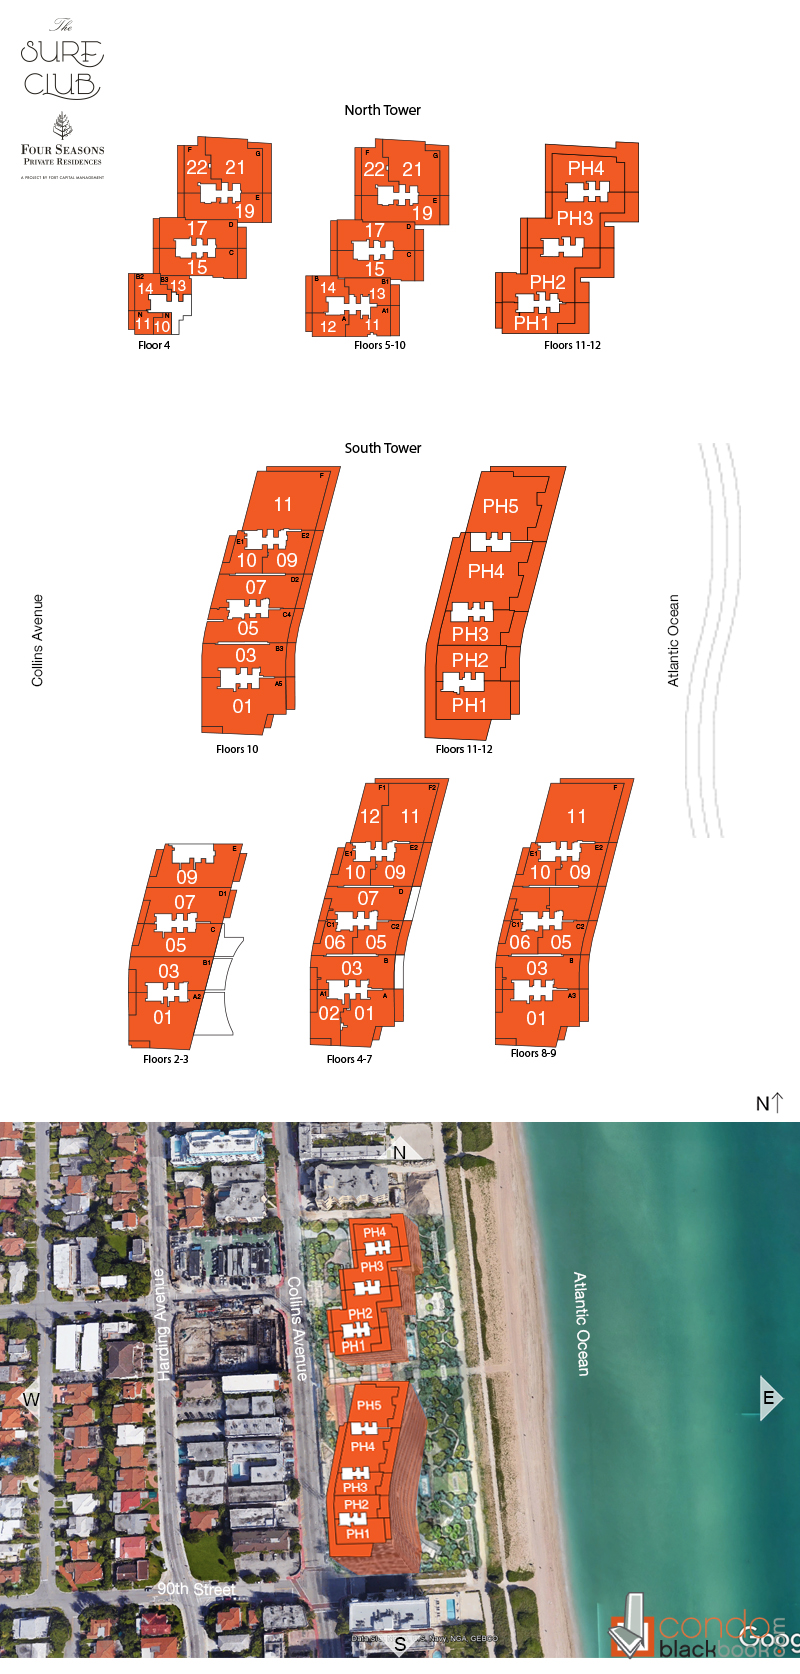 The Surf Club Four Seasons Hotel And Residences Floor Plans